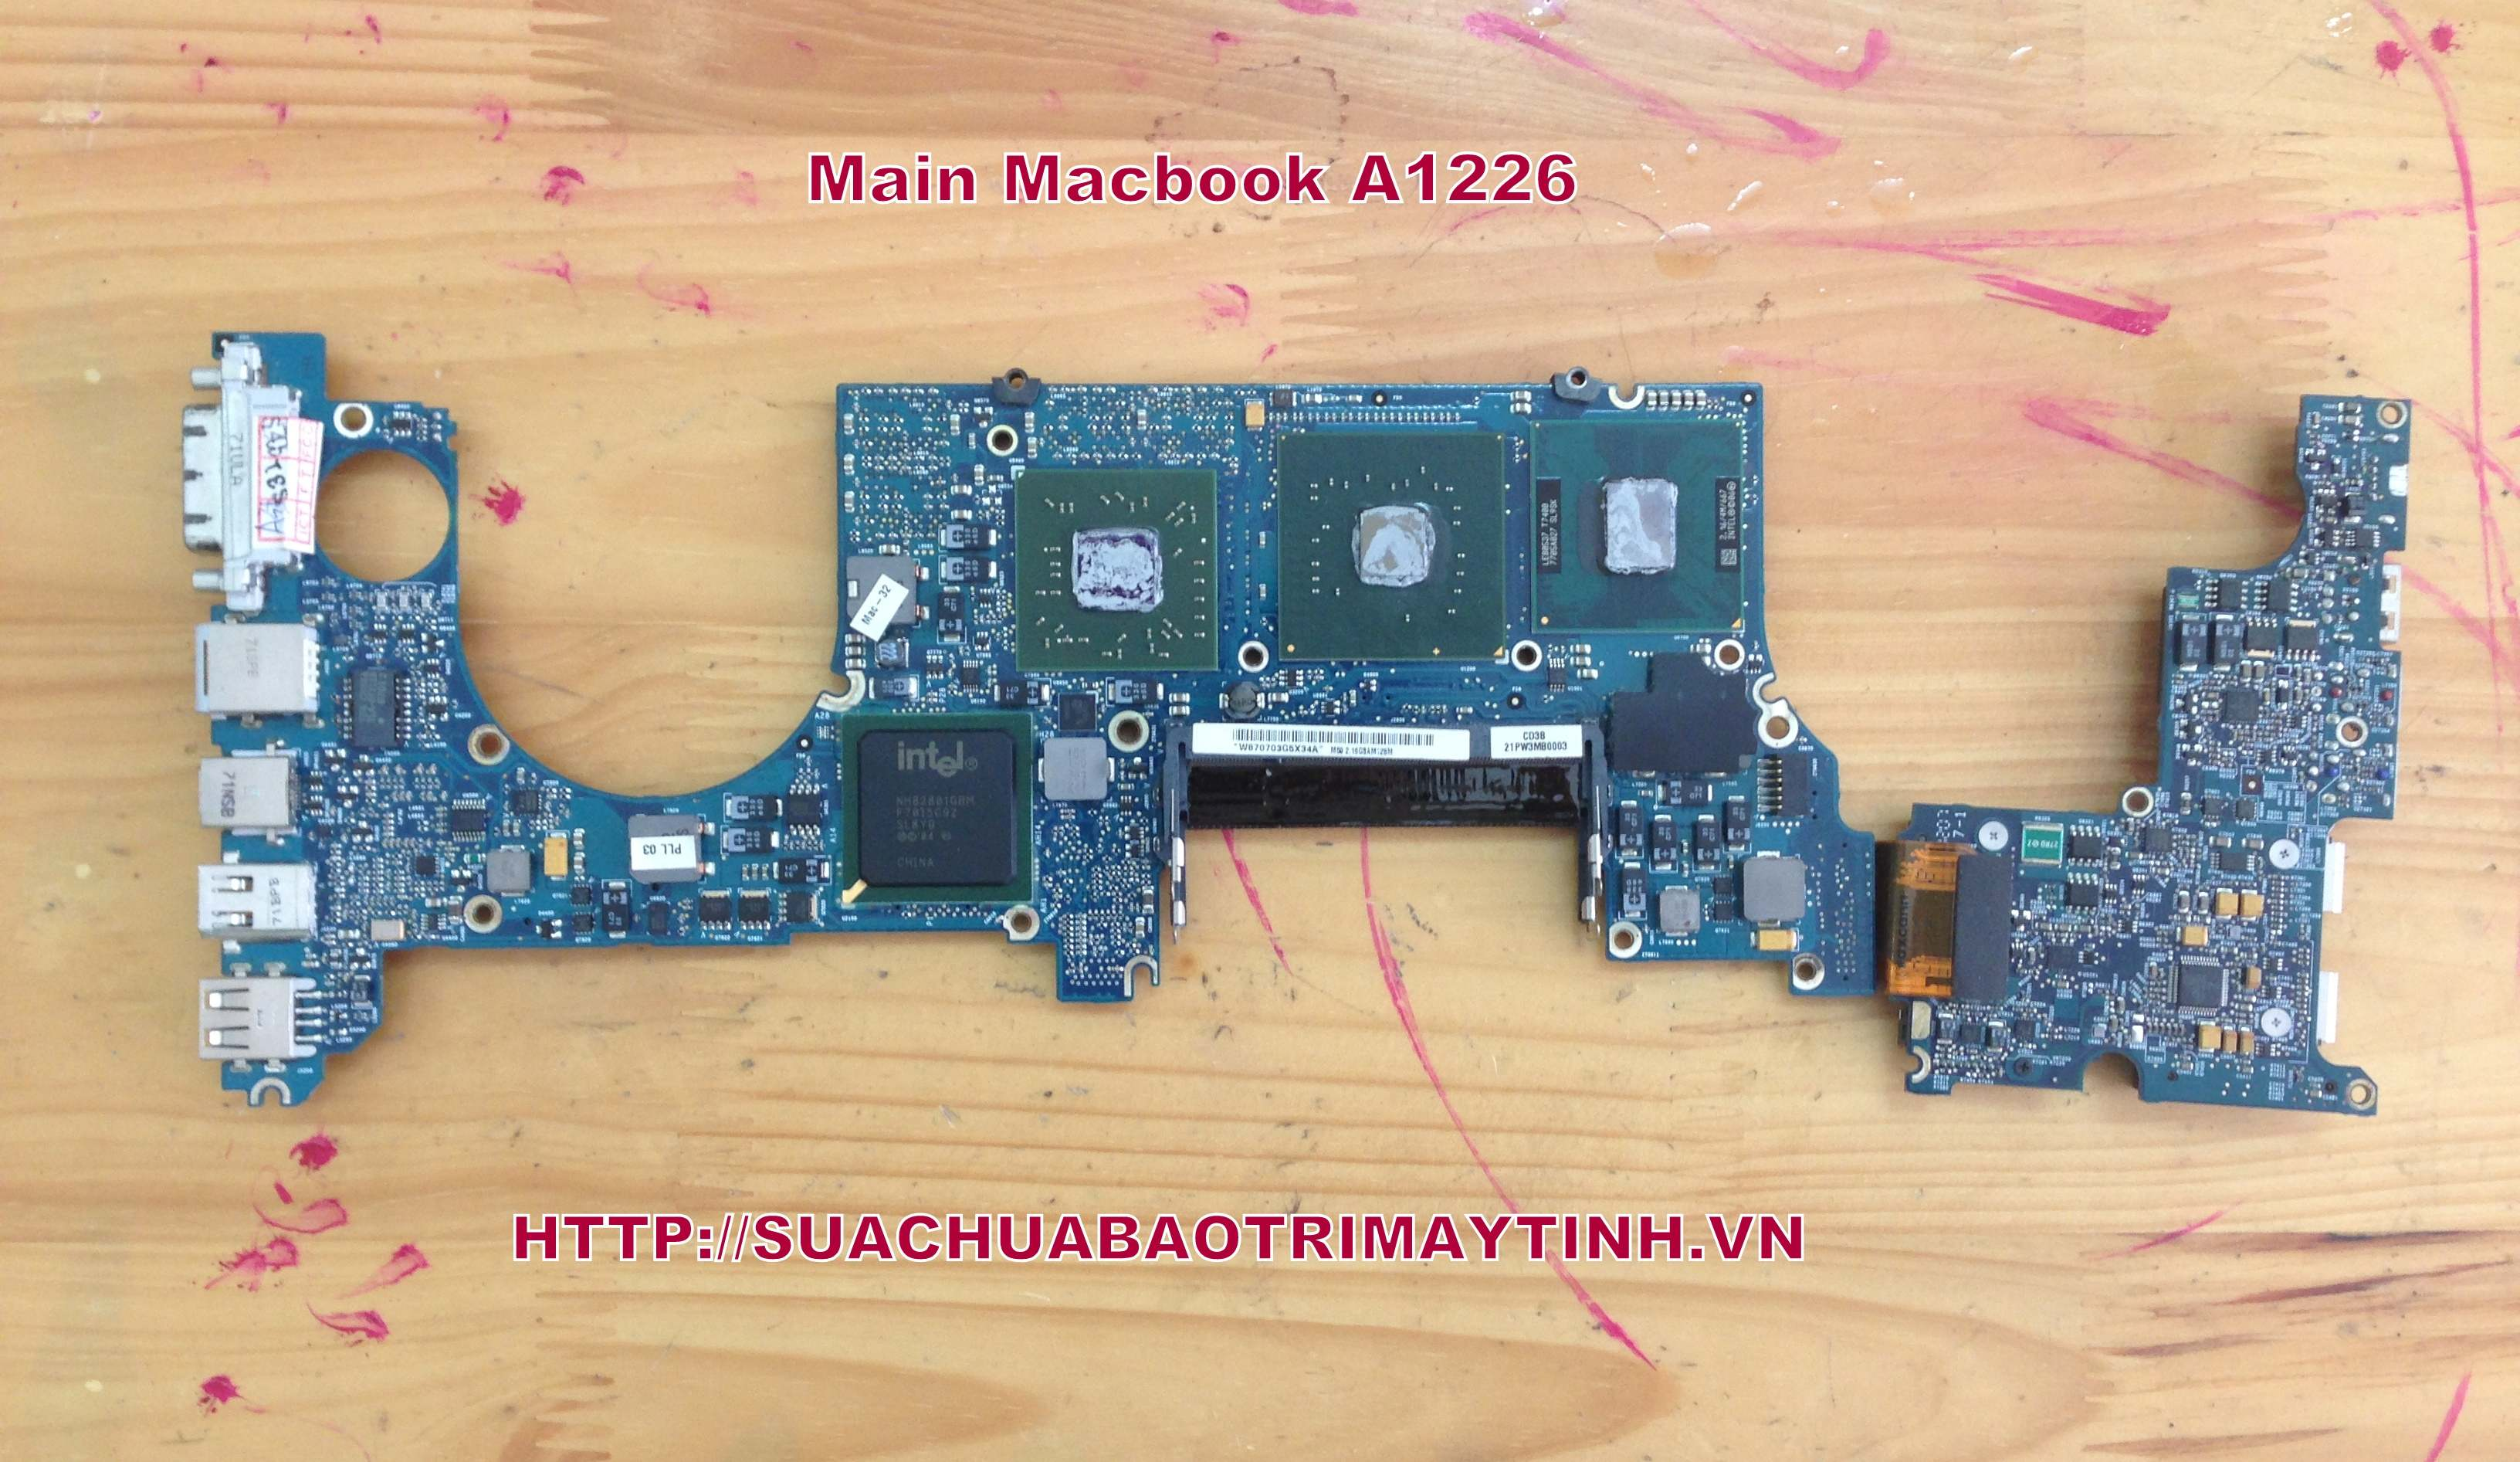 Thay Main Macbook A1226